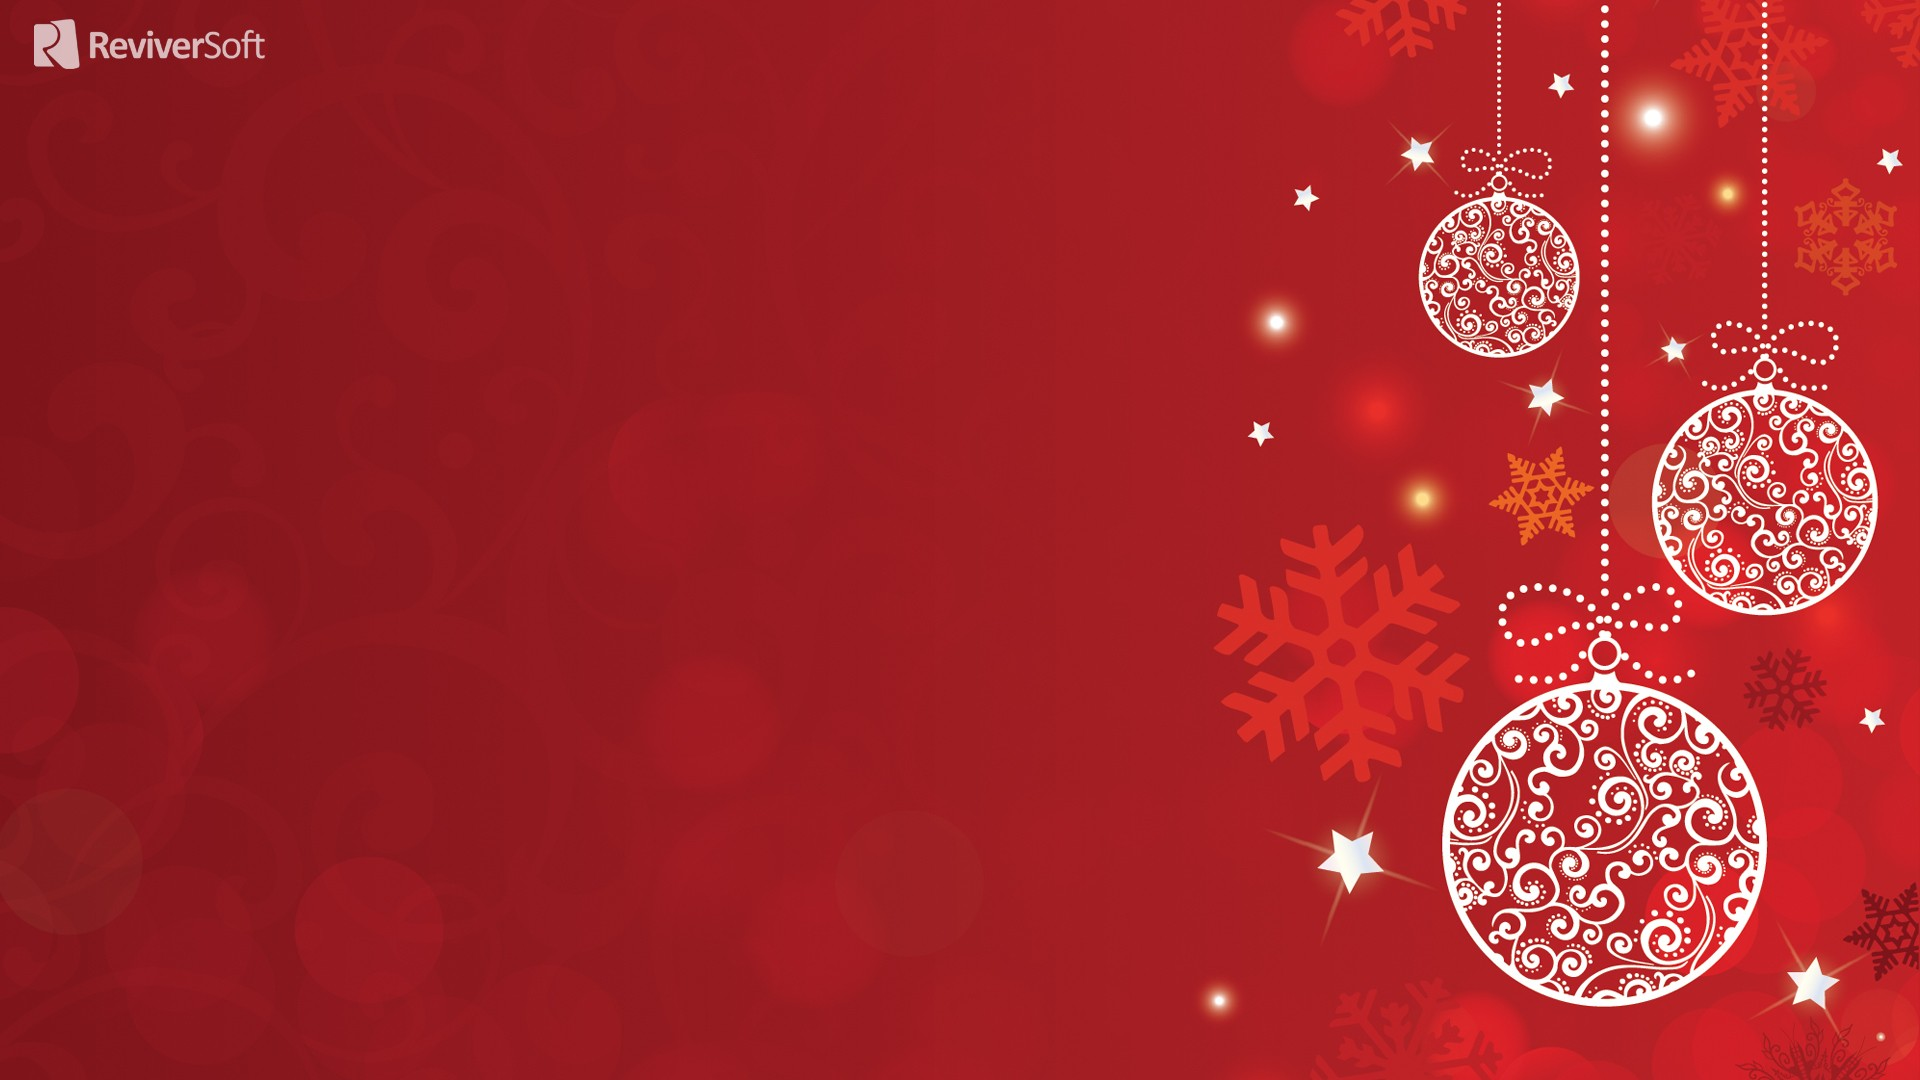 Iphone Wallpaper Resolution Christmas Background 183 ① Download Free Amazing Backgrounds